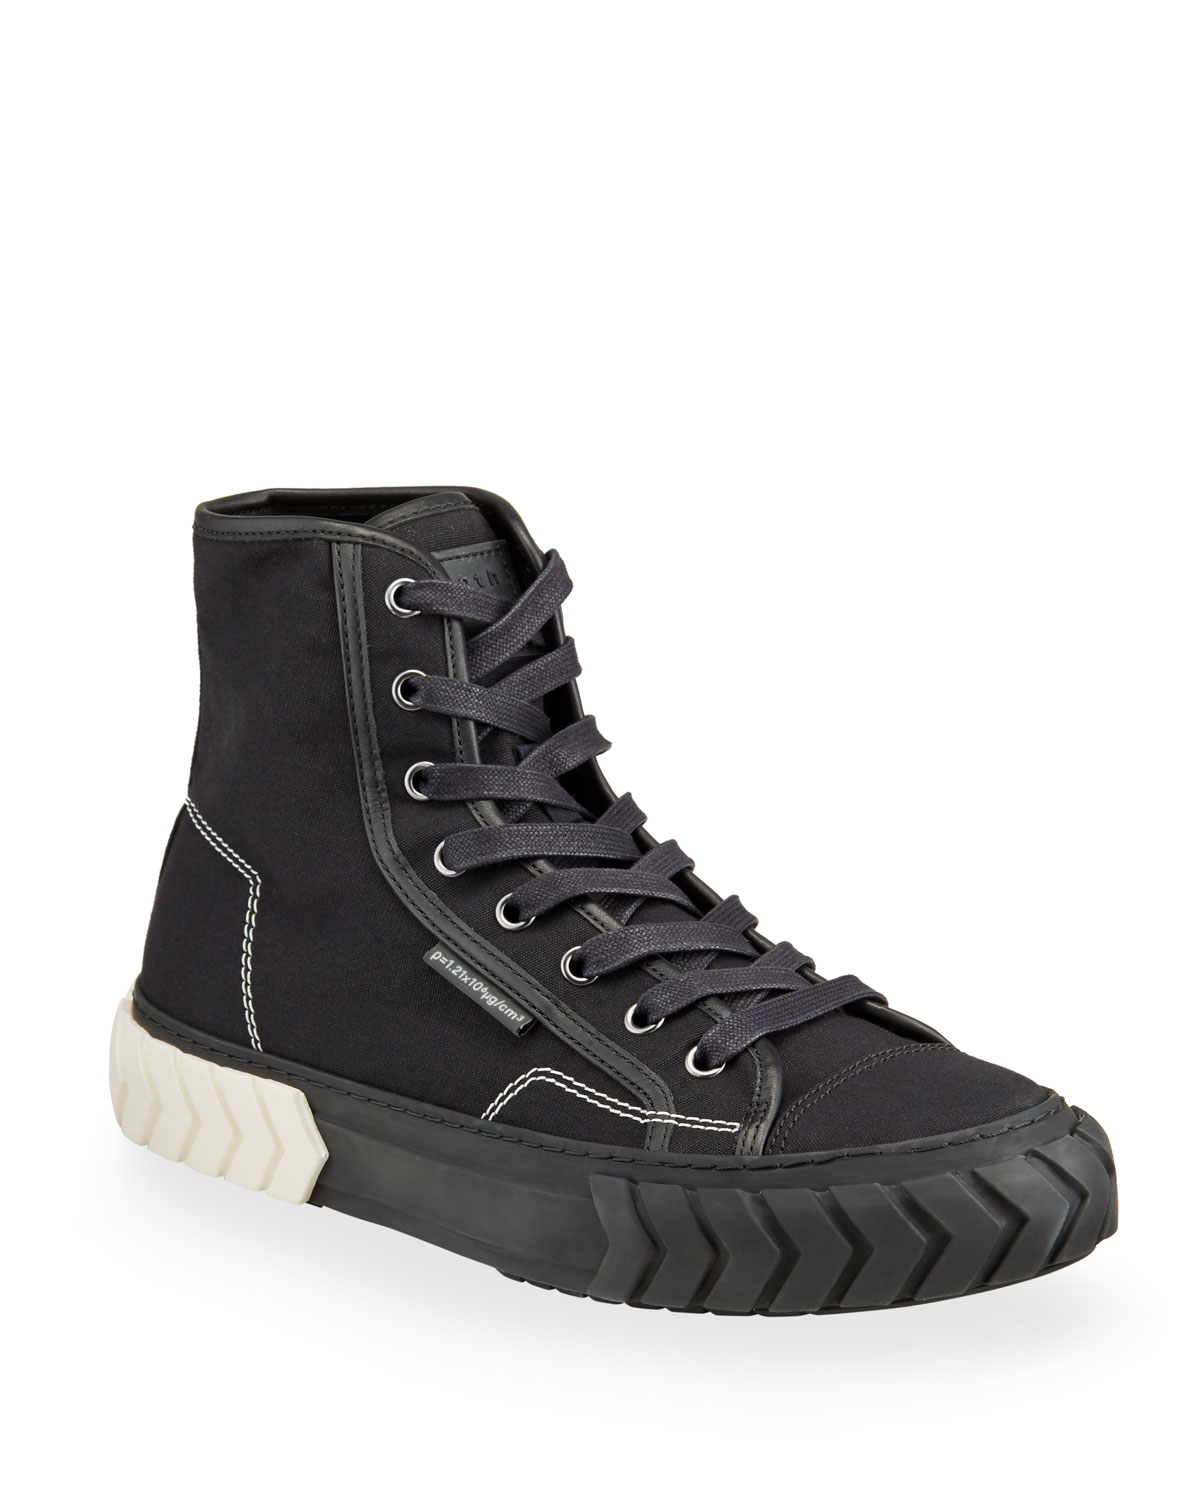 Both Men's Pop Tyres High-Top Canvas Sneakers